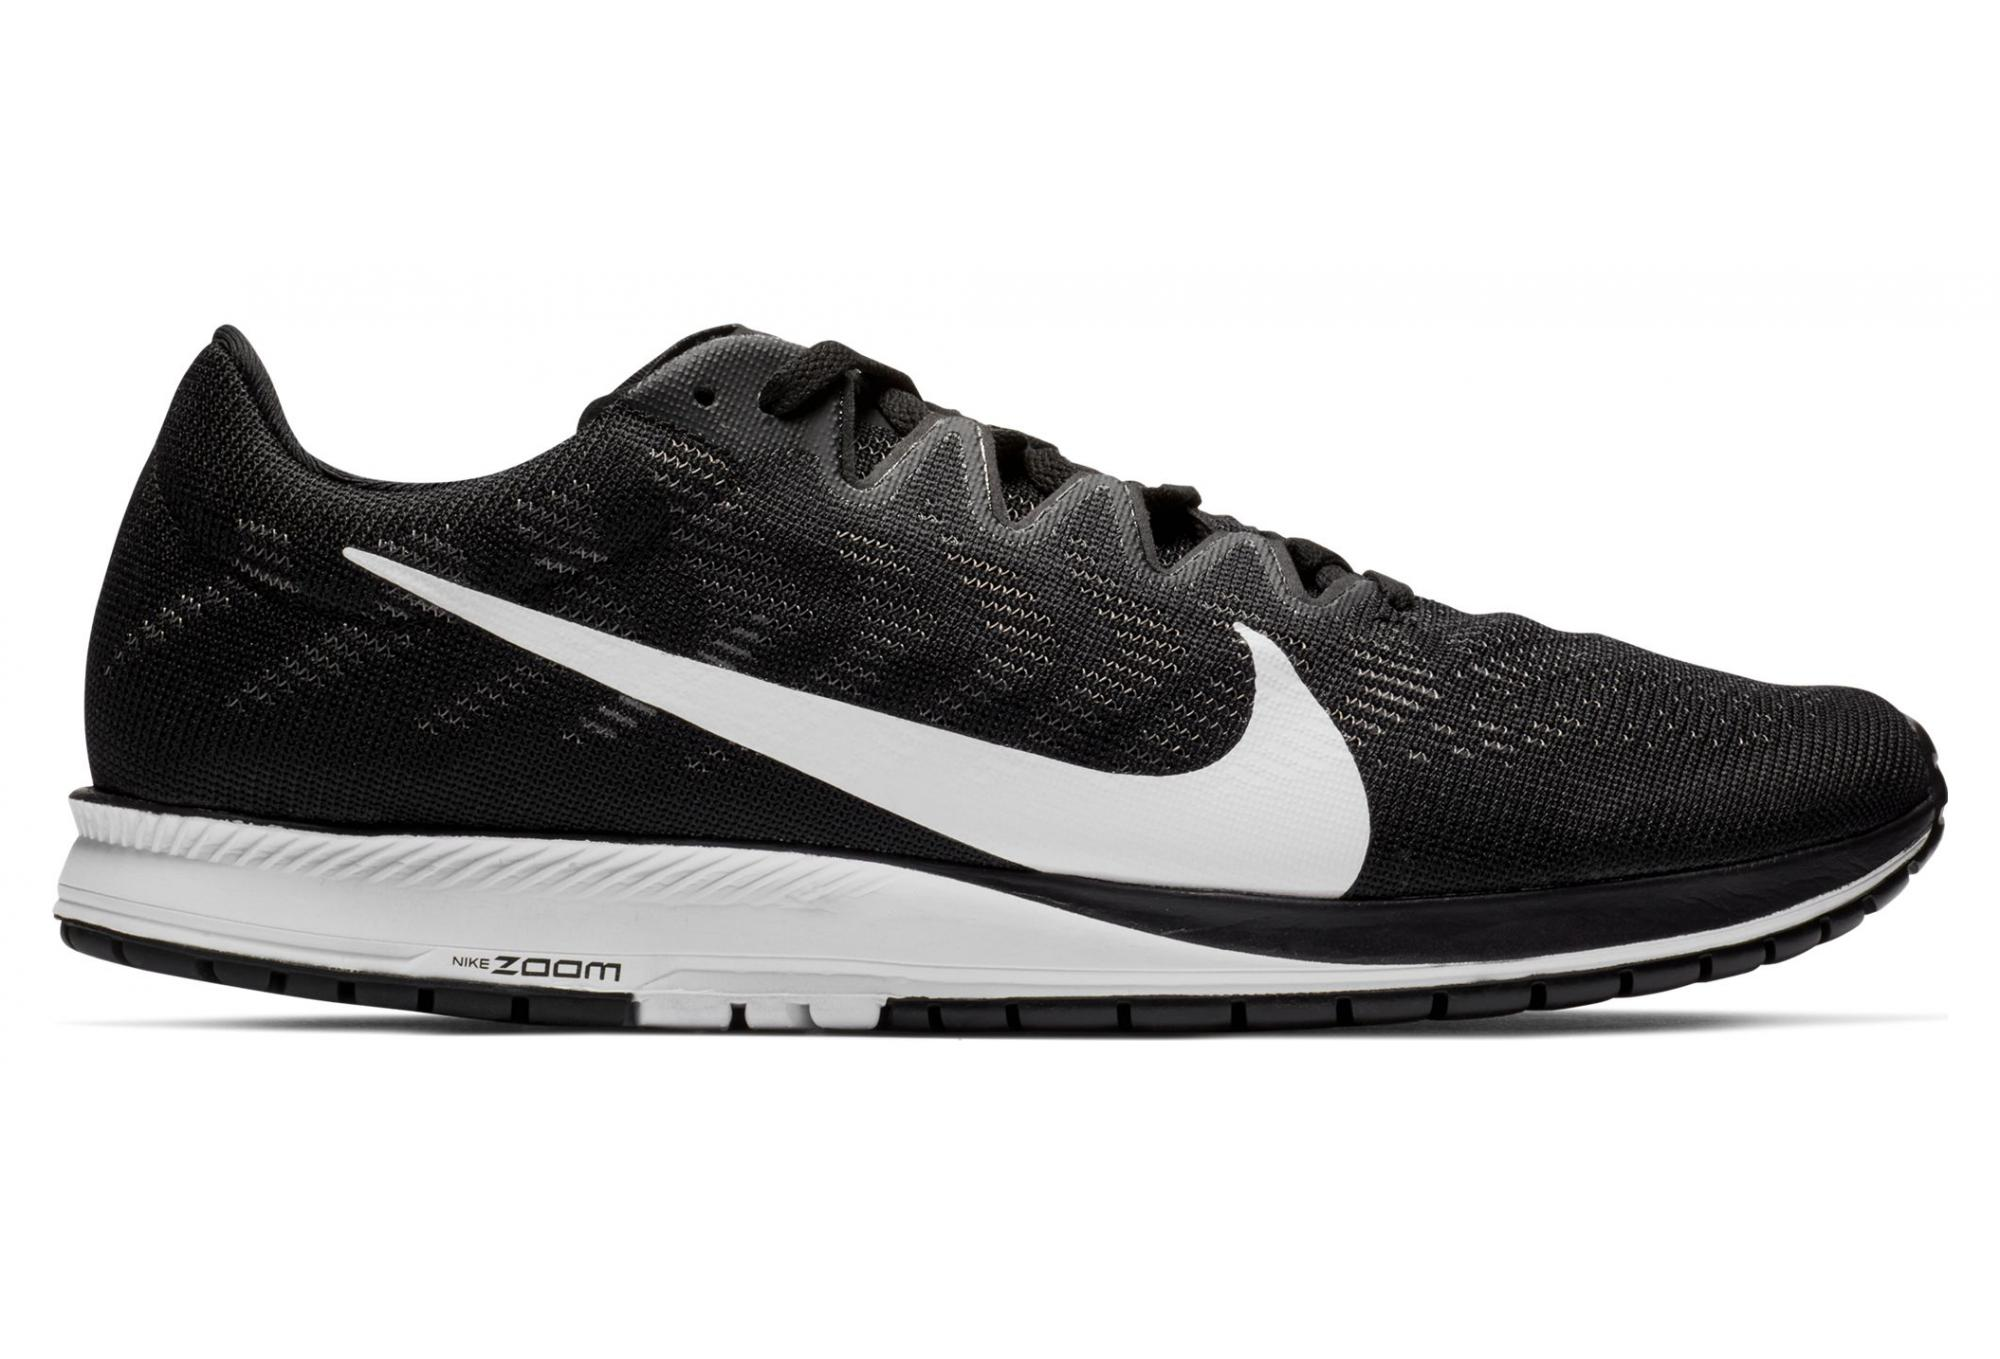 low priced 6560f dfa0b Zapatillas Nike Air Zoom Streak 7 para Hombre Negro